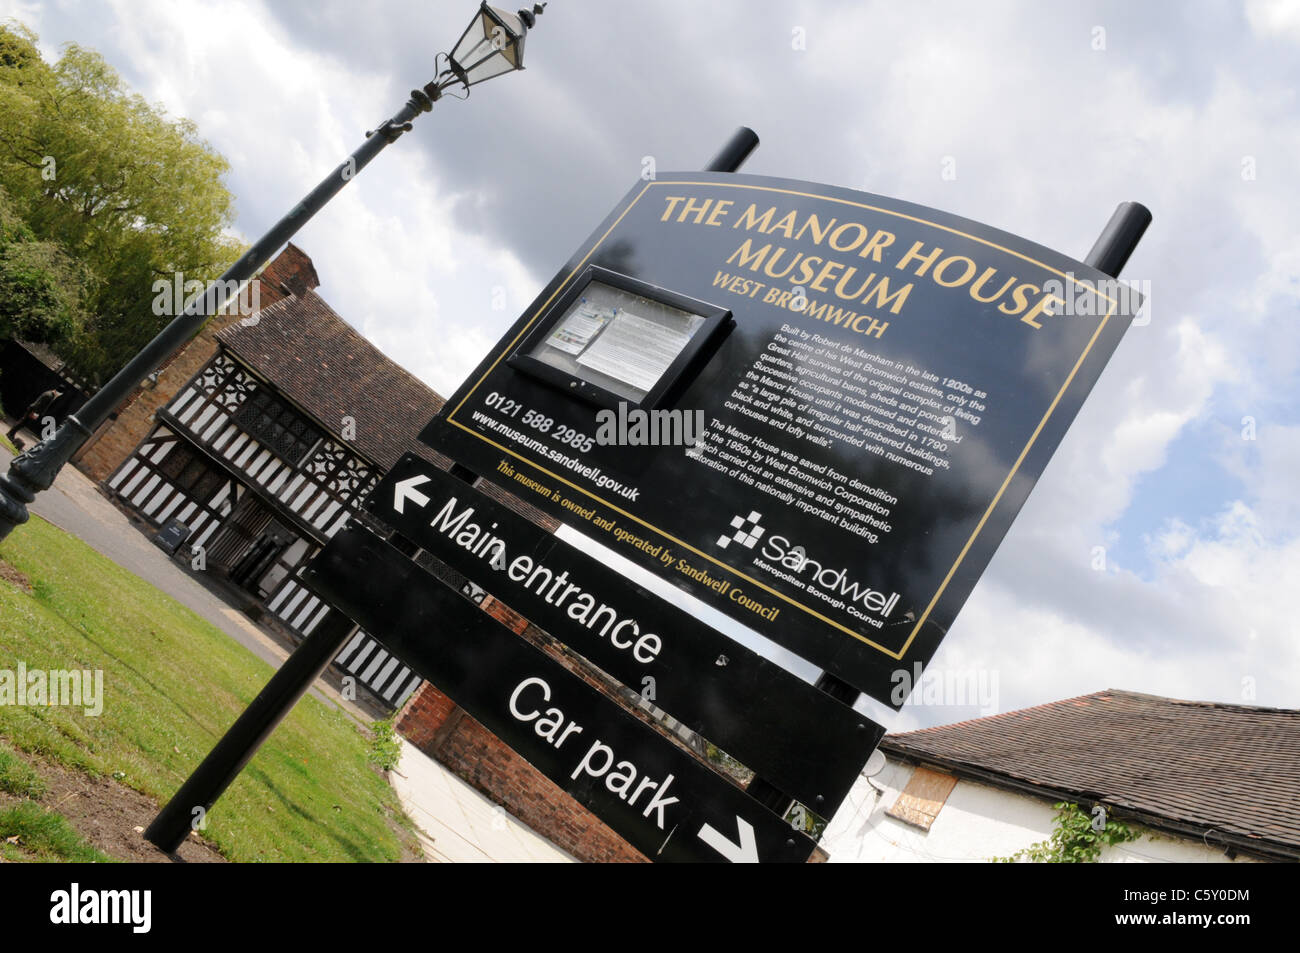 Entrance sign to the historic Manor House Museum run by Sandwell Council - Stock Image